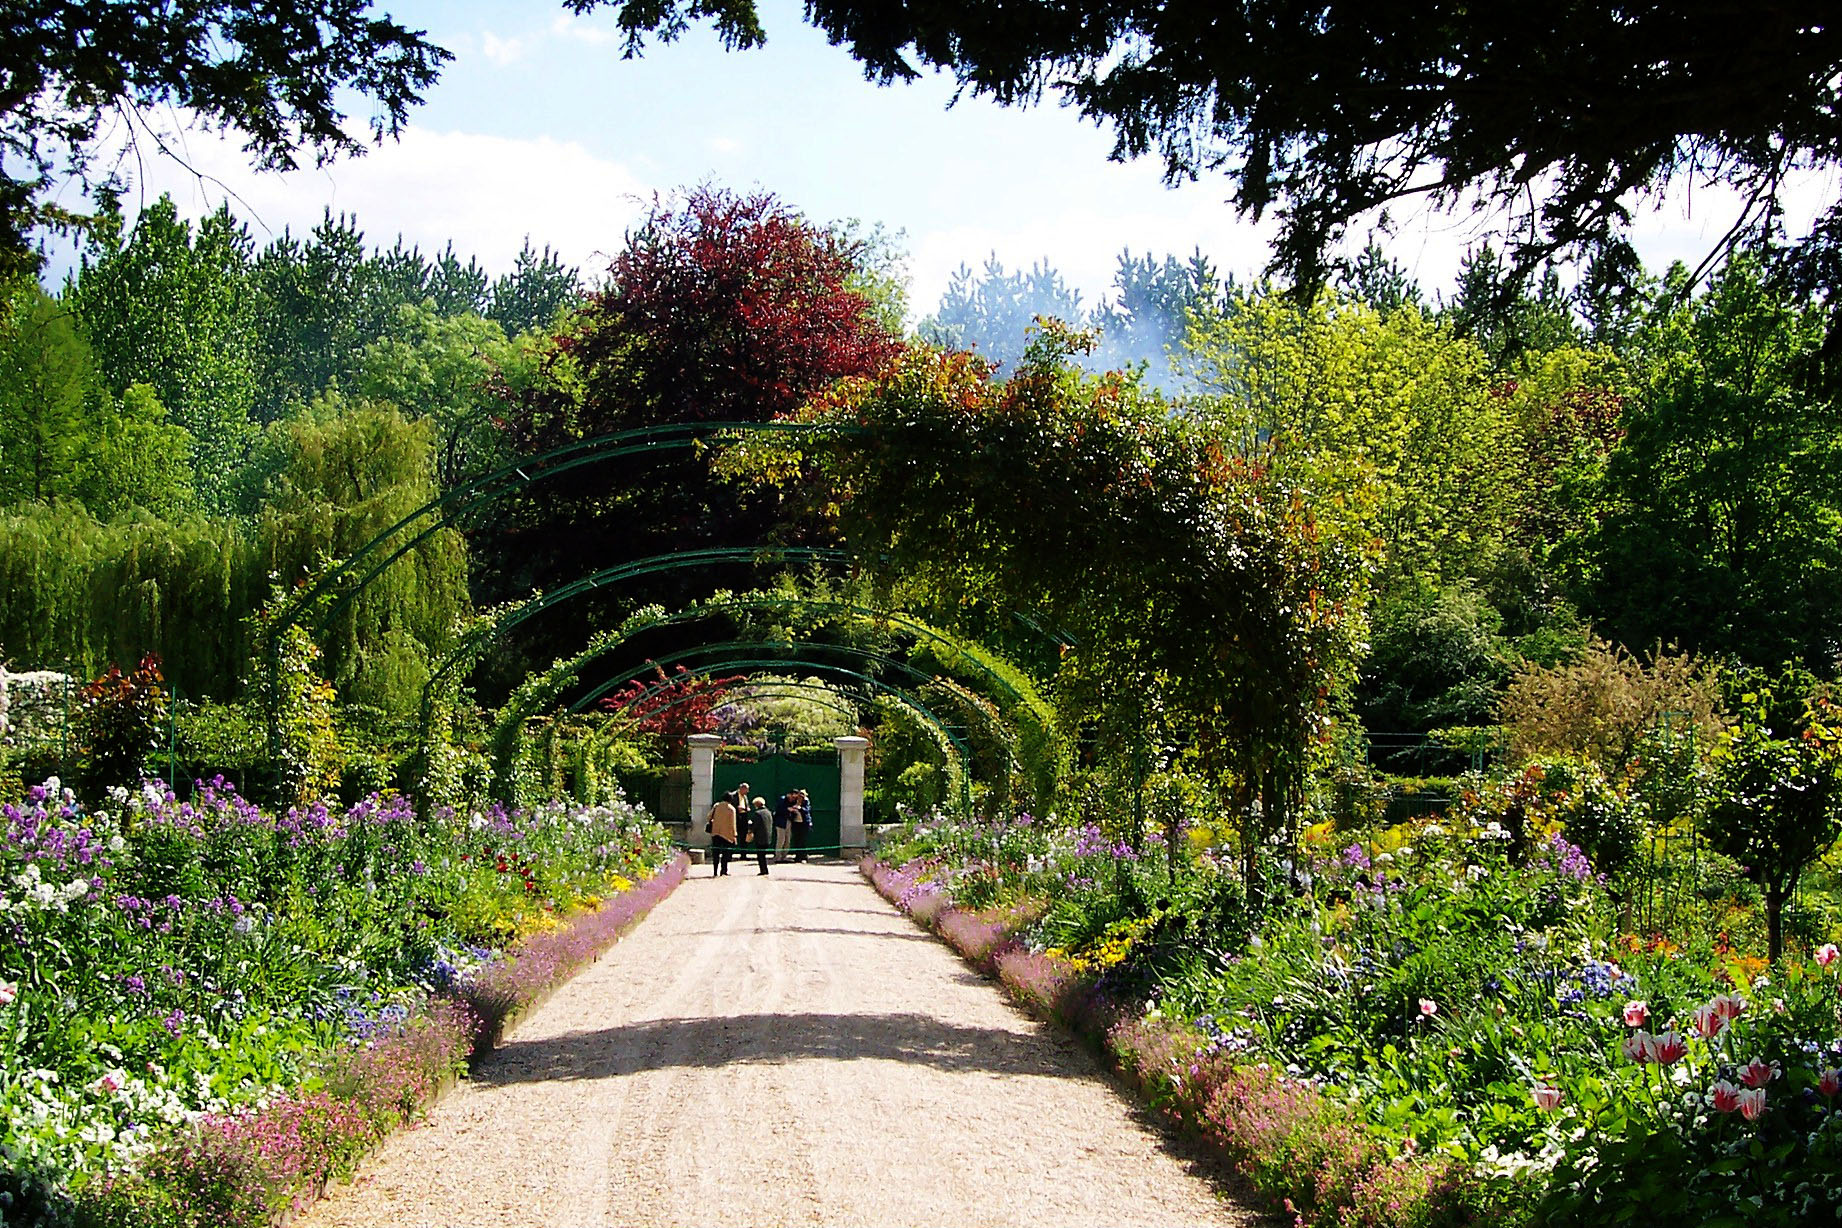 Travel to Claude Monet home or Chateau driveway in Giverny France 01